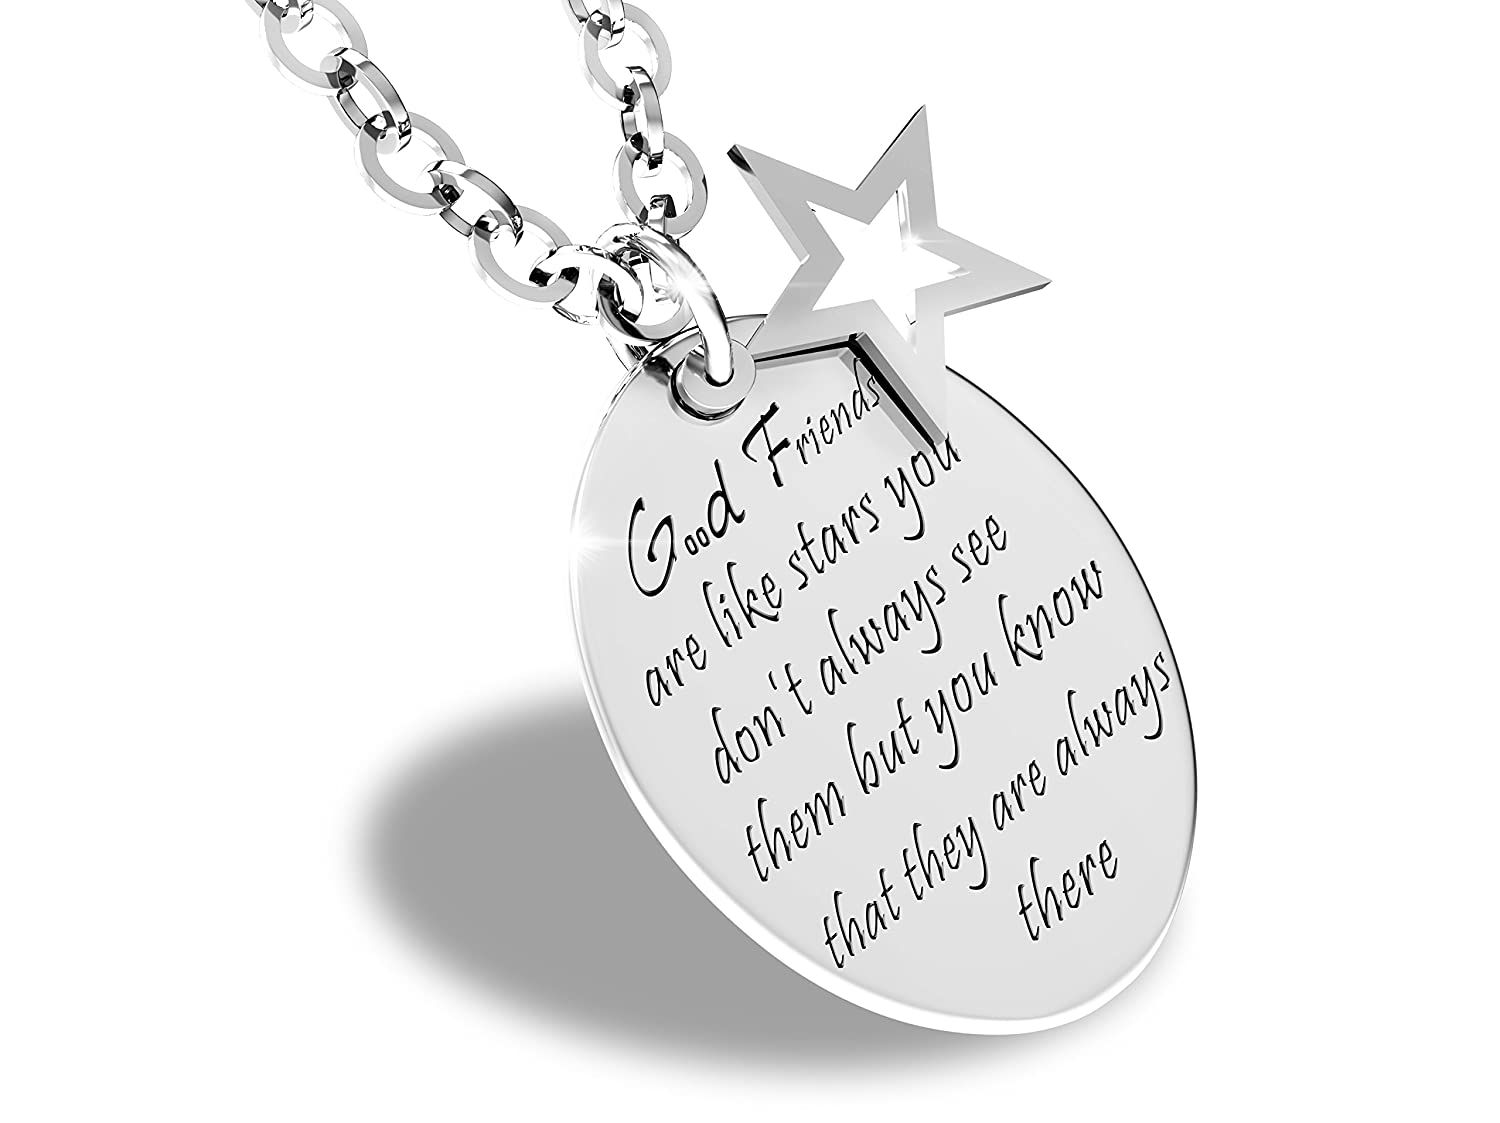 55d2d179ca0ac7 Good Friends Are Like Stars Inspirational Friendship Quotes Necklace  Stainless Steel Charm Pendant: Amazon.ca: Jewelry